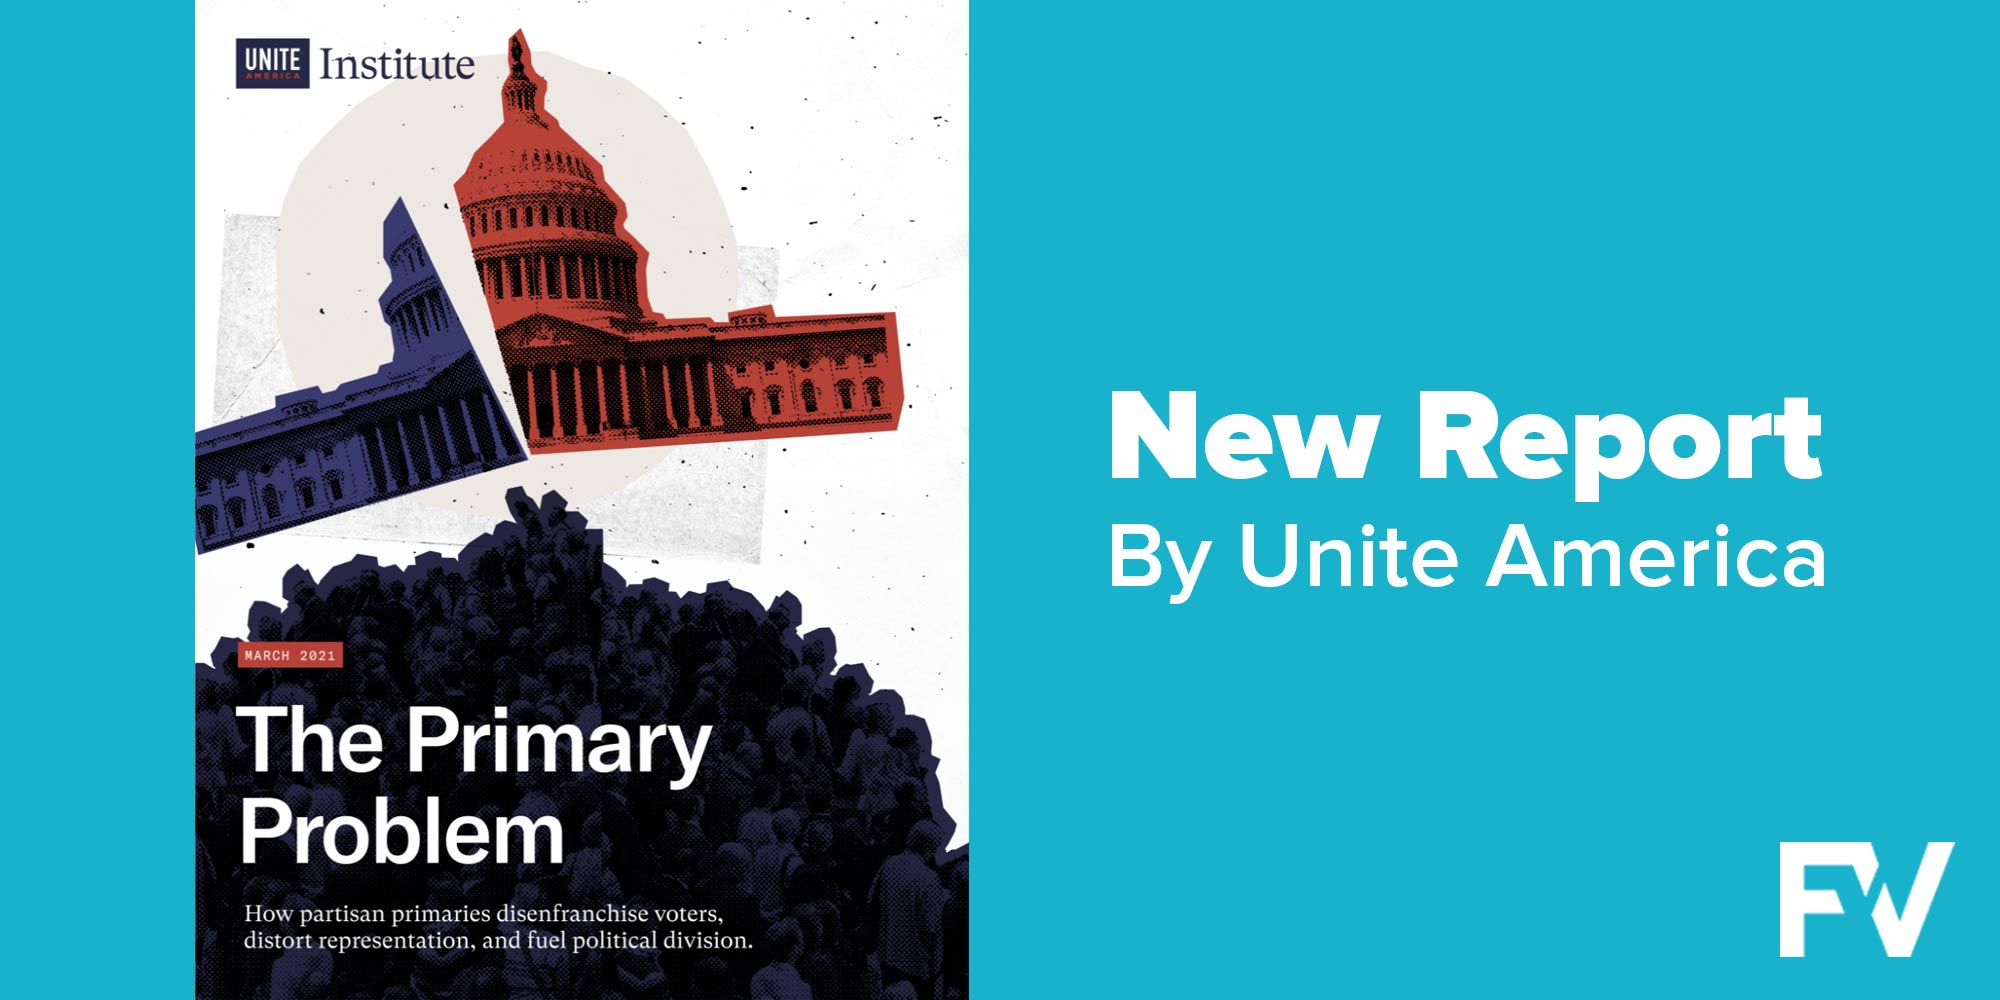 Unite America highlights nonpartisan primaries with RCV as solution to polarization crisis